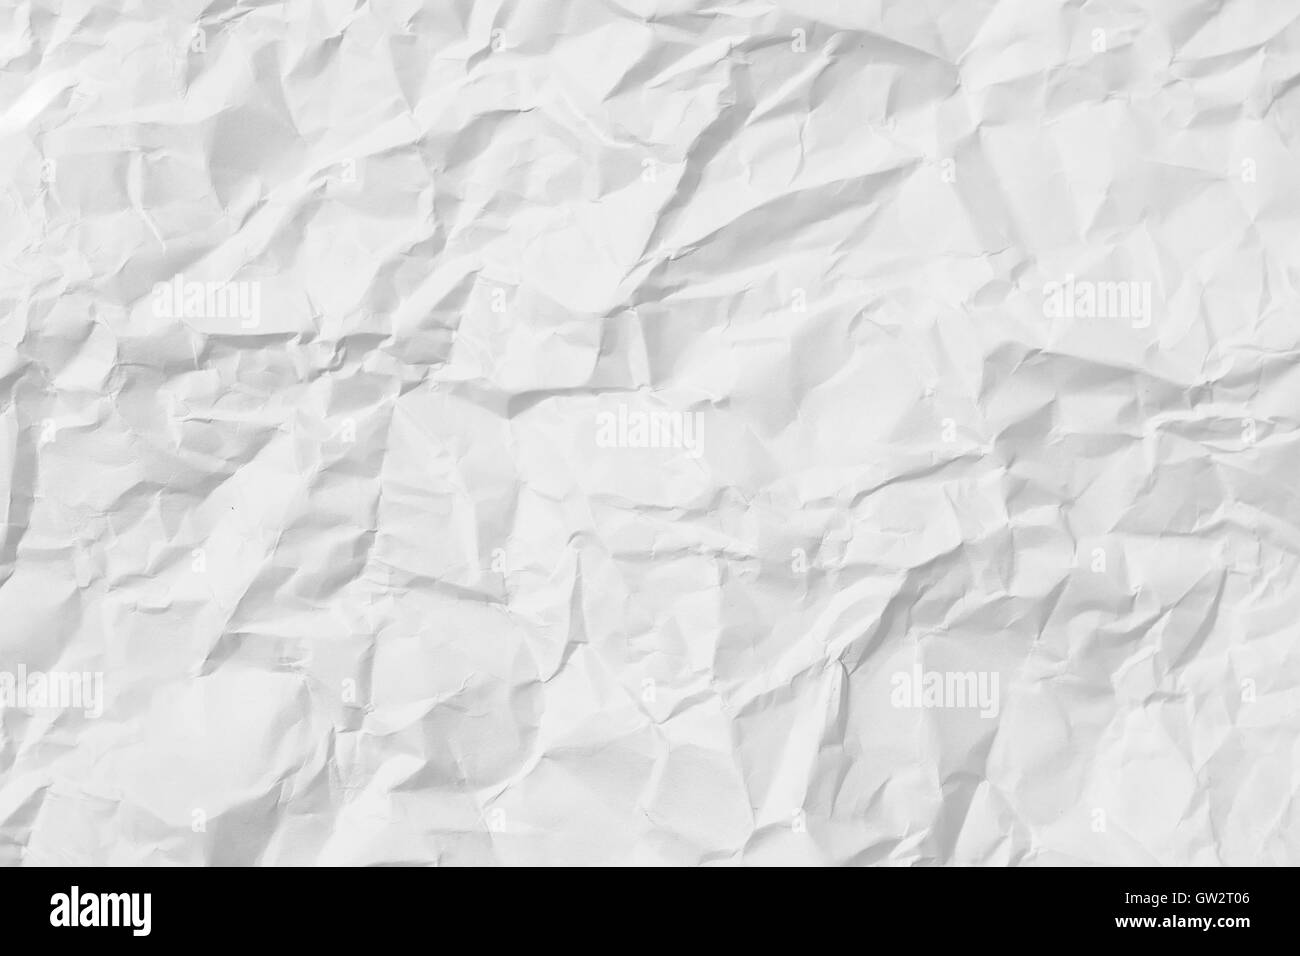 White crumpled paper for background image - Stock Image